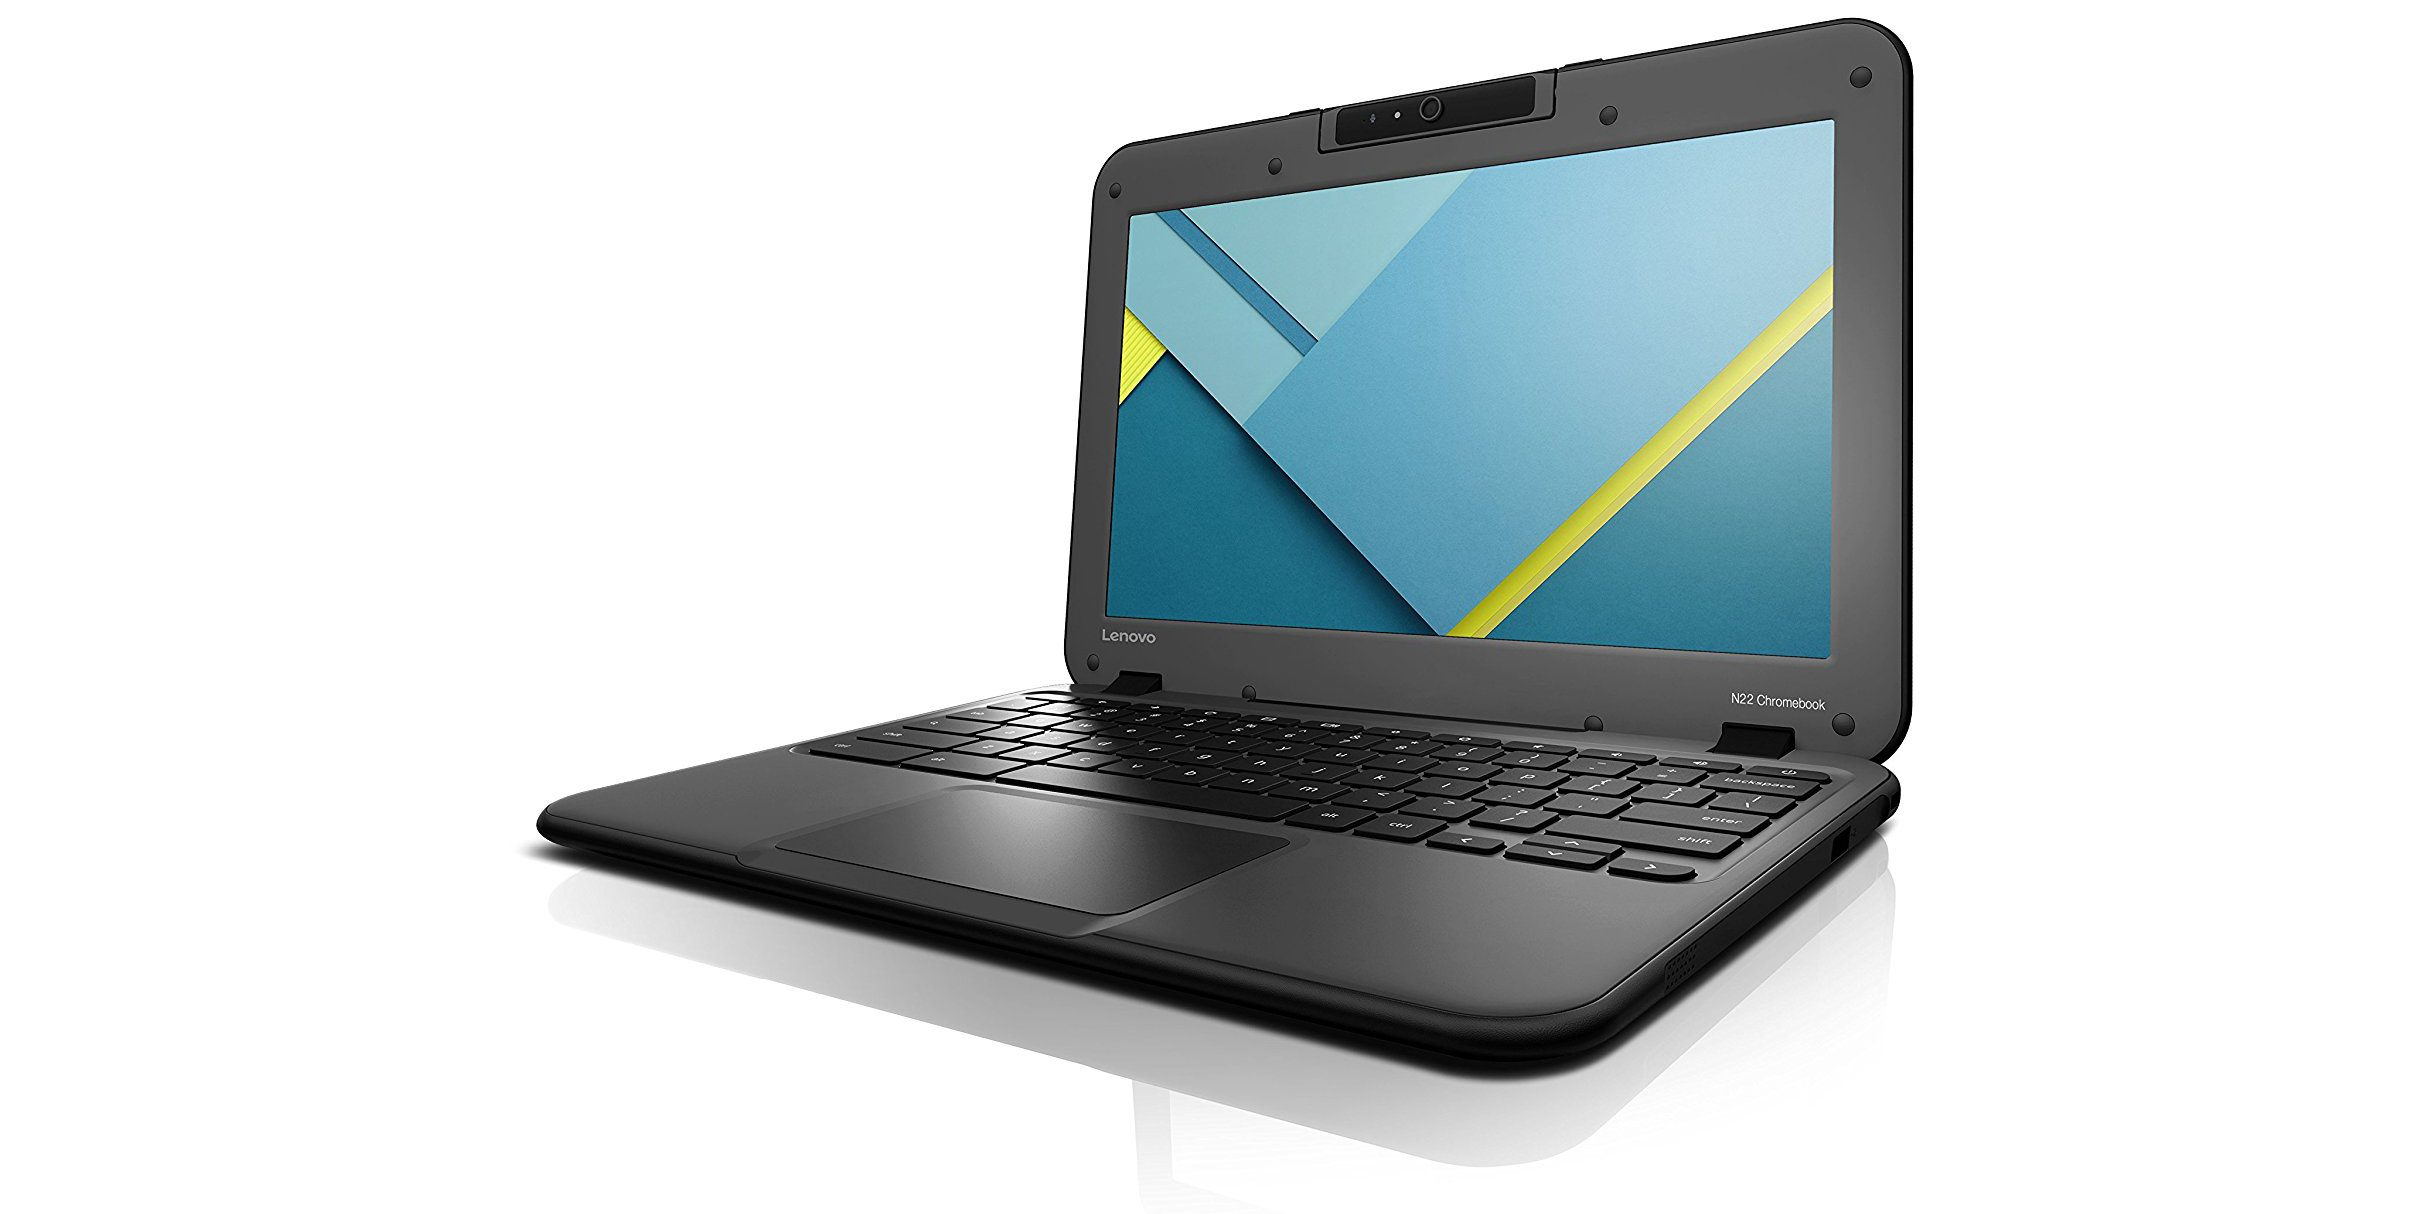 lenovo-n22-chromebook